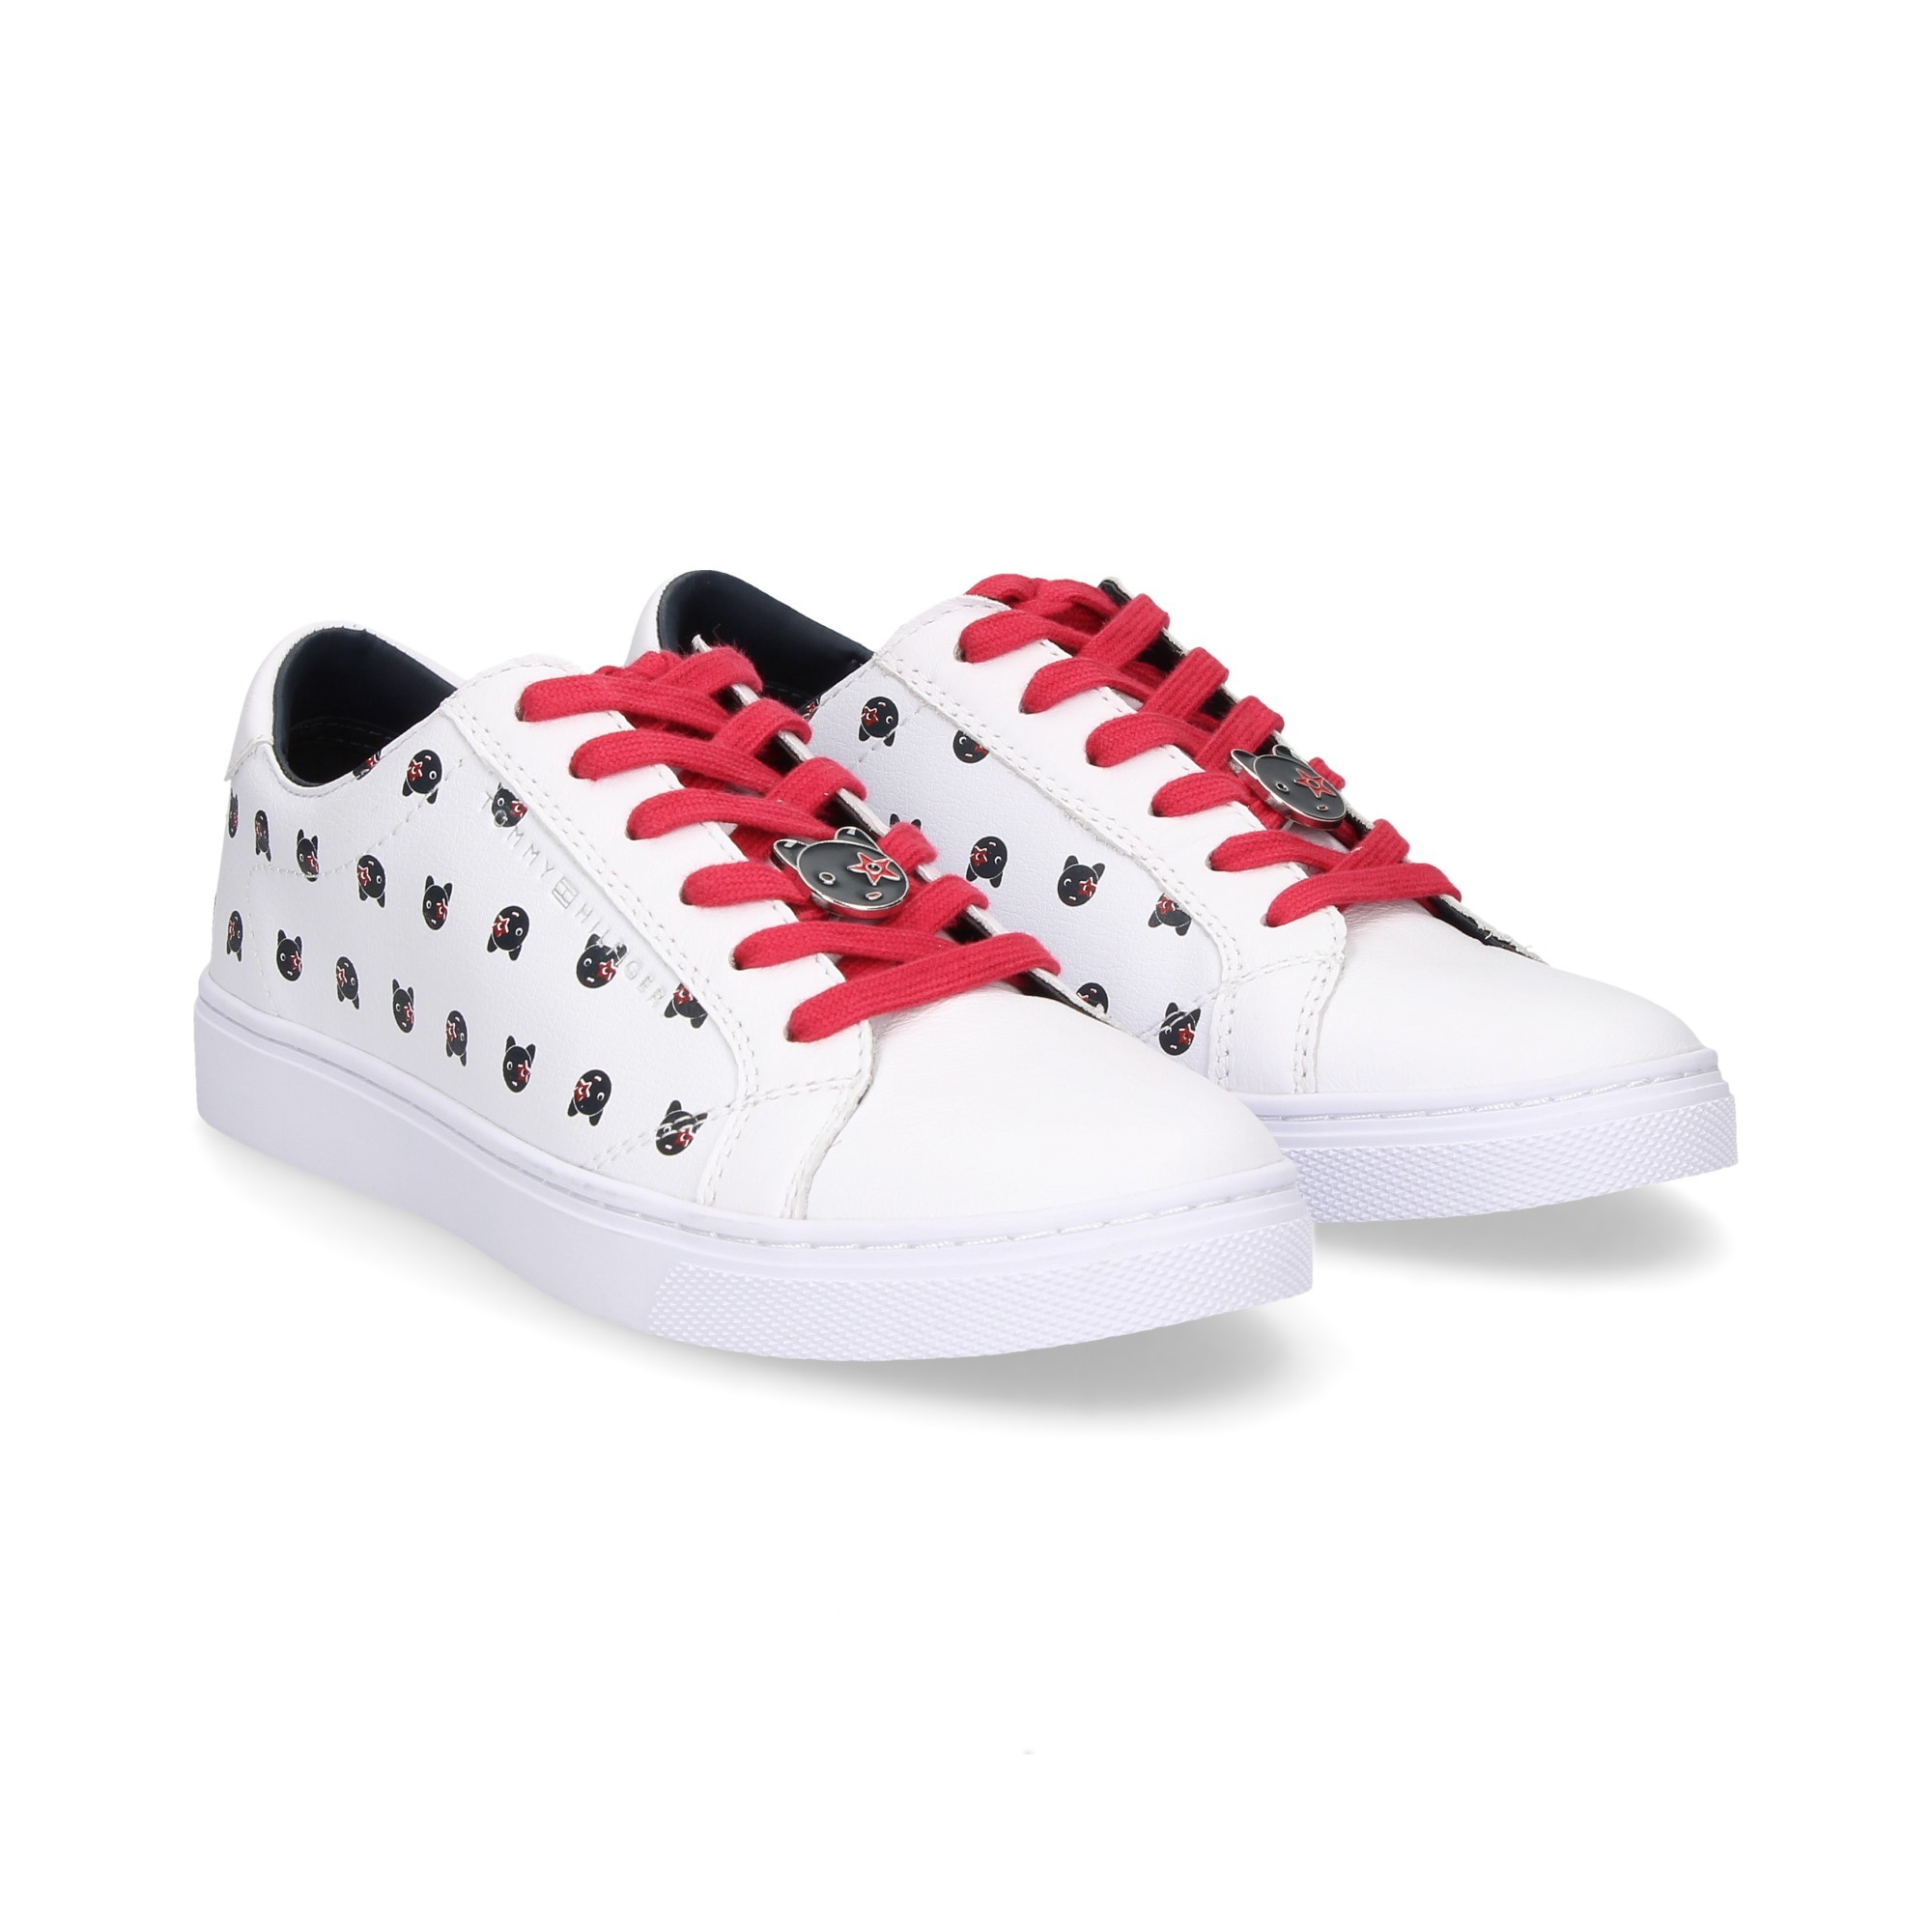 12ca631a12460 TOMMY HILFIGER Women's Sneakers FW03619100 WHITE